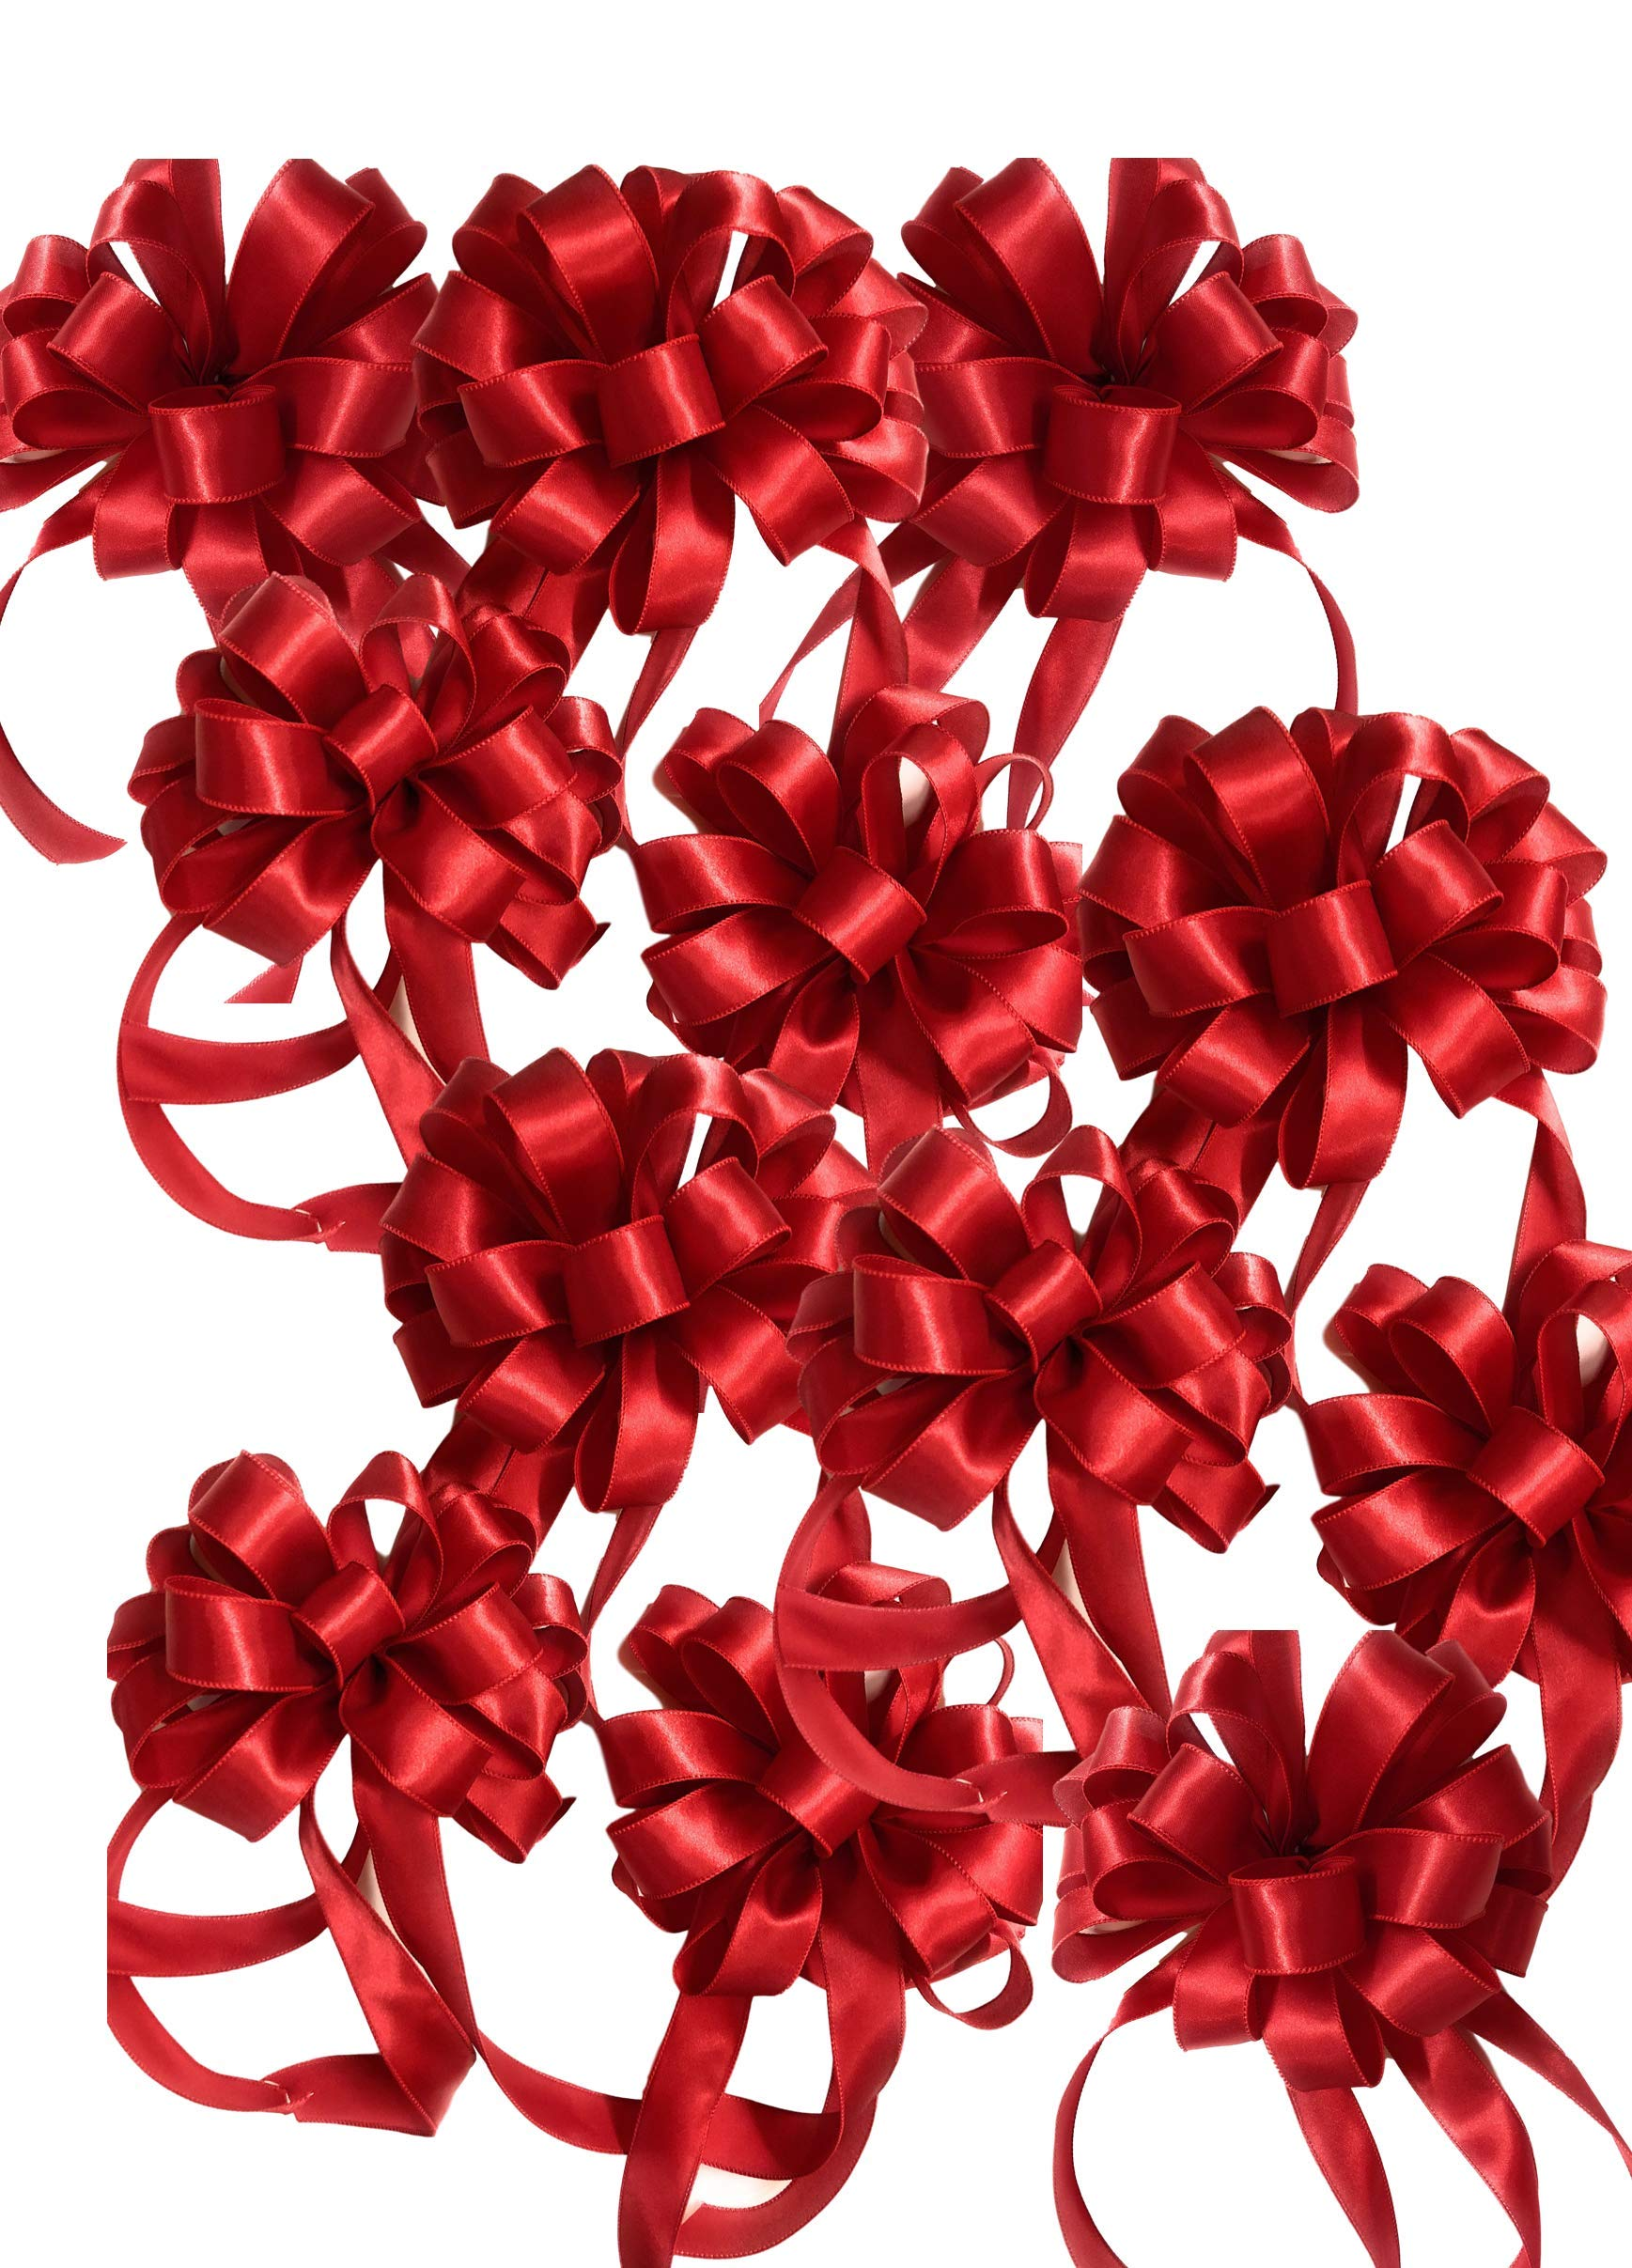 Down Home Designs 12 Pack Red Christmas Holiday Bows - Durable Indoor/Outdoor Wired 12 Loop (10inx22in)